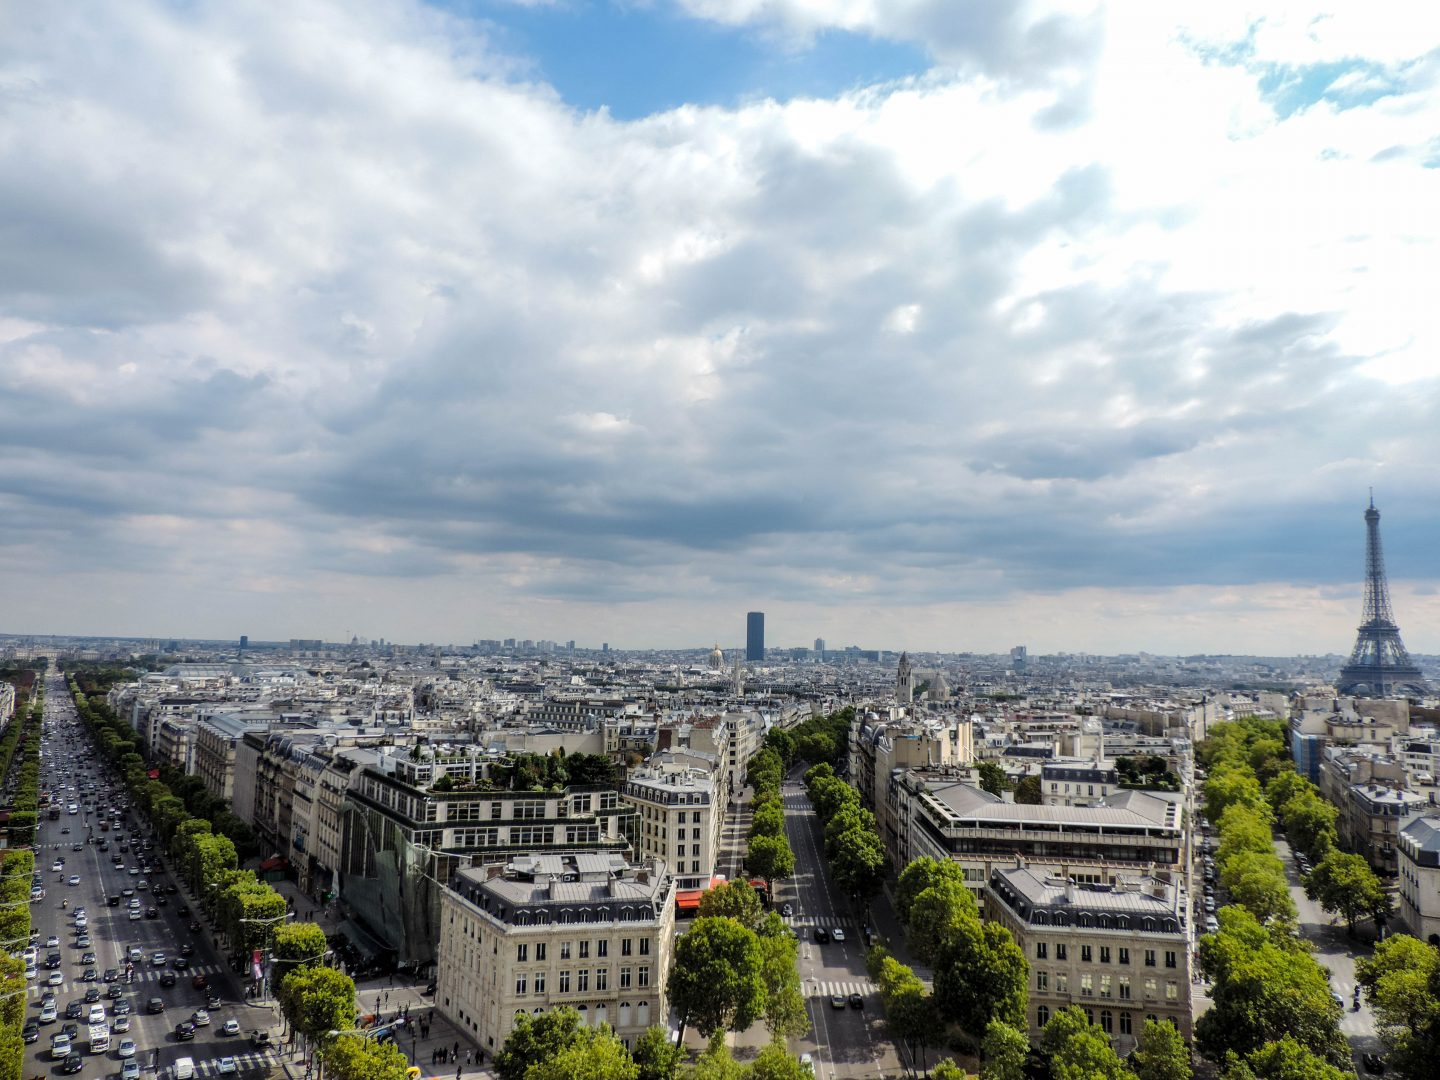 Postcards From Paris: A Photo Diary, Part 1